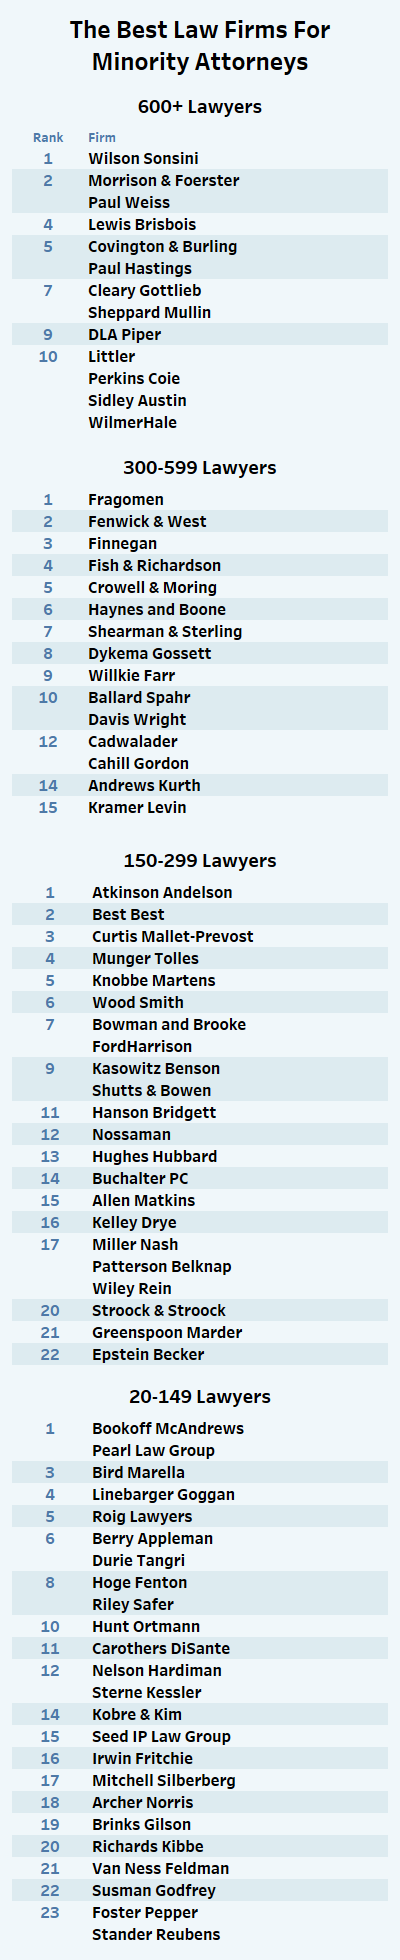 The Best Firms For Minority Attorneys - Law360